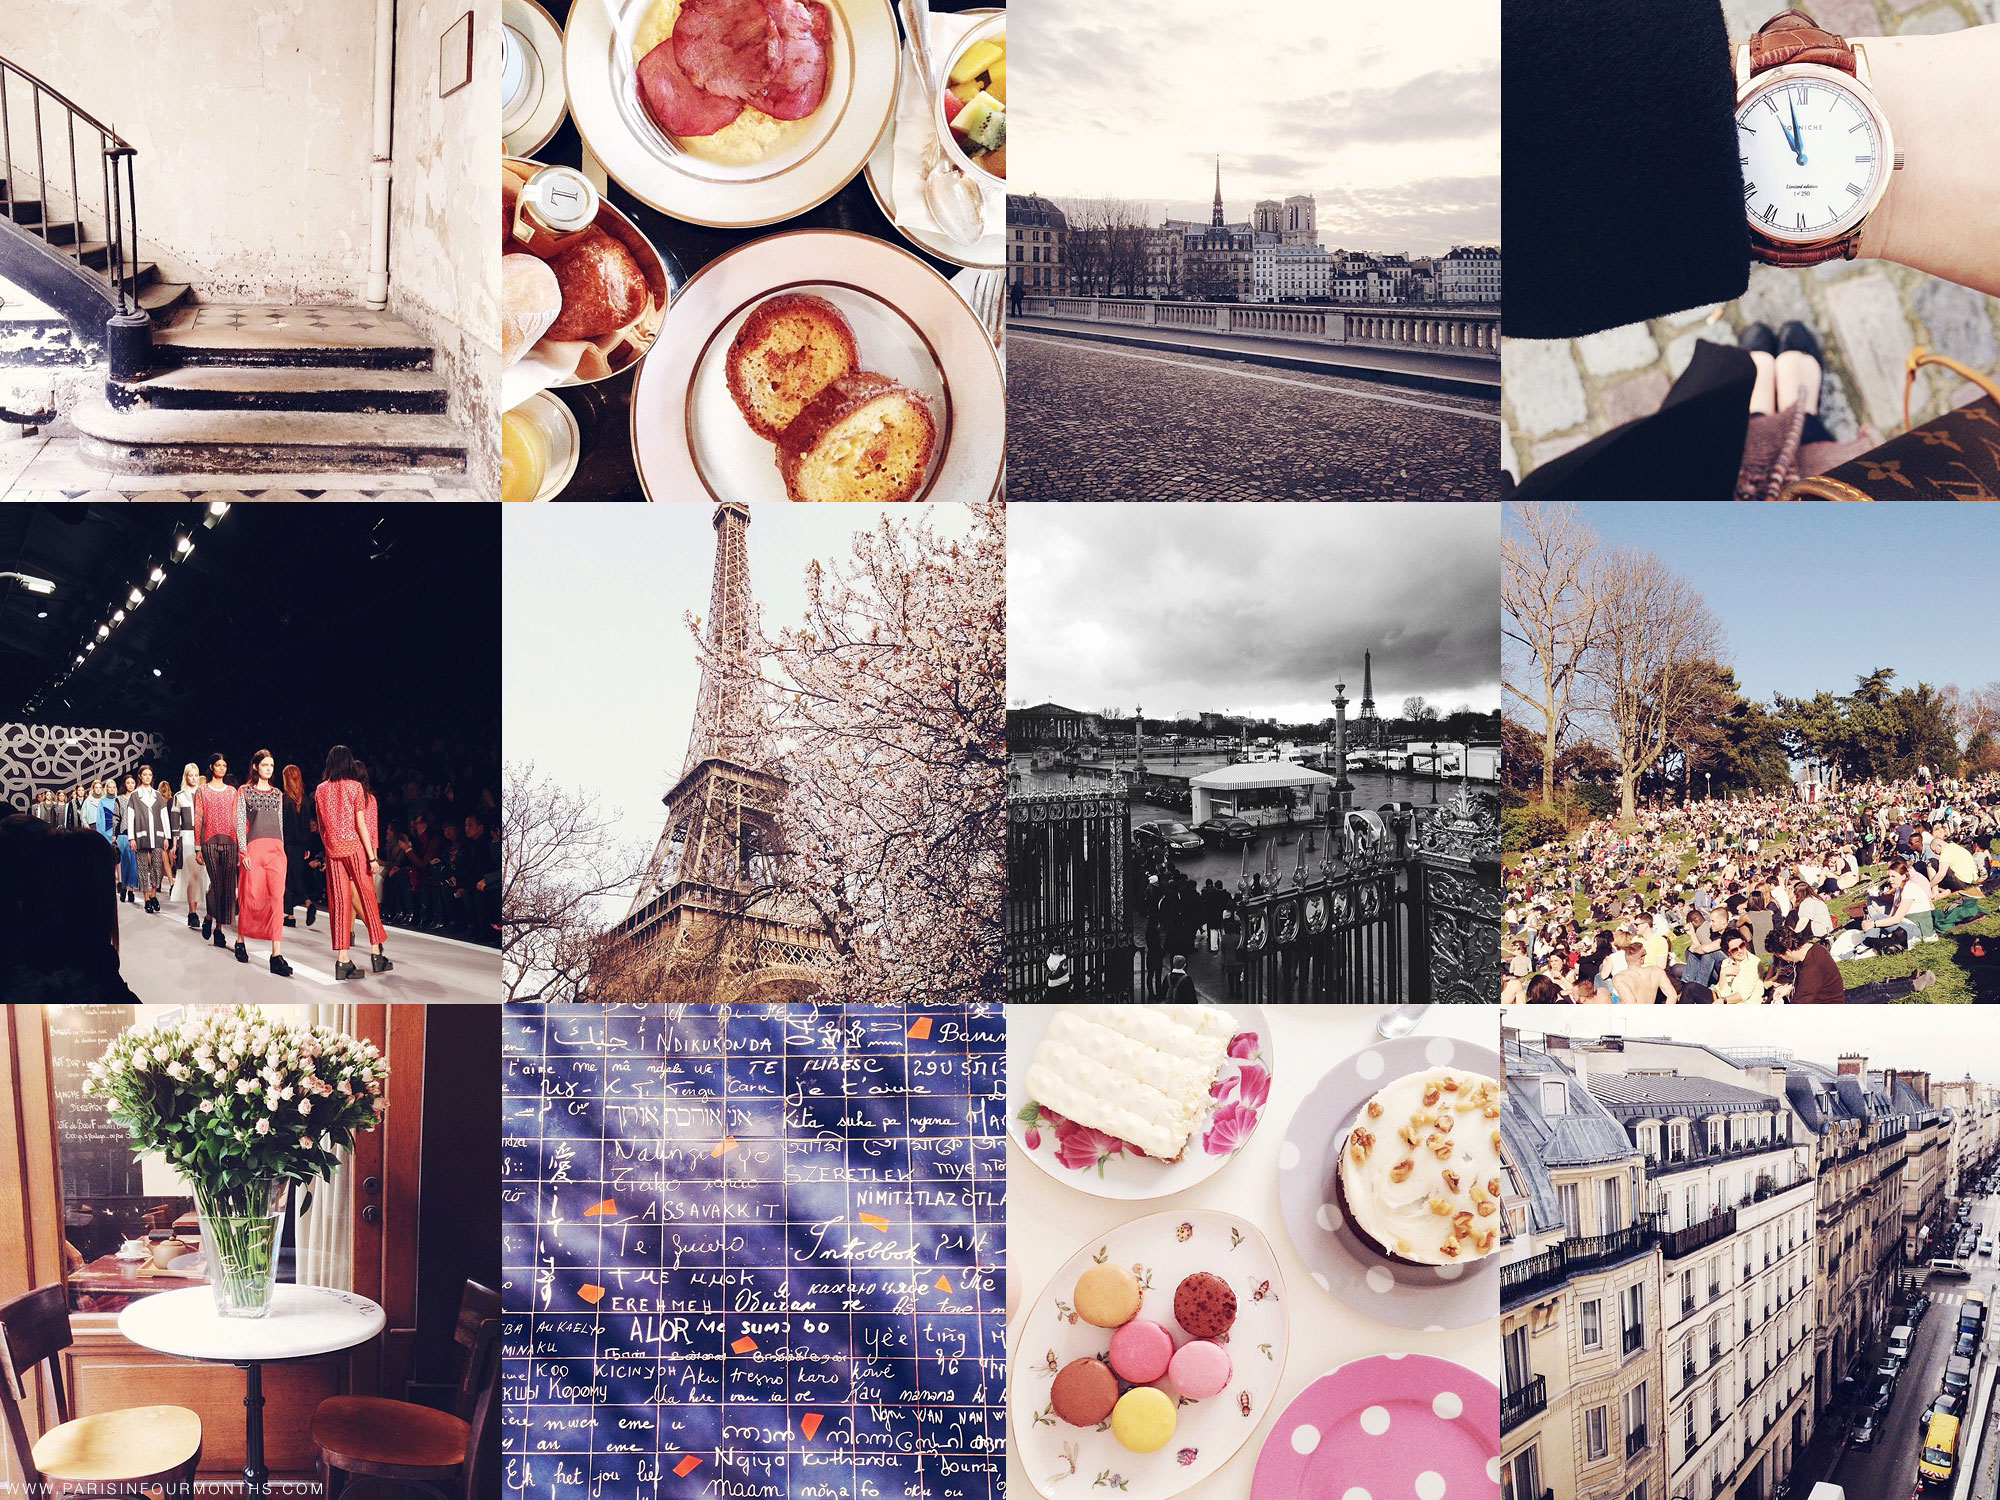 On Instagram by Carin Olsson (Paris in Four Months)